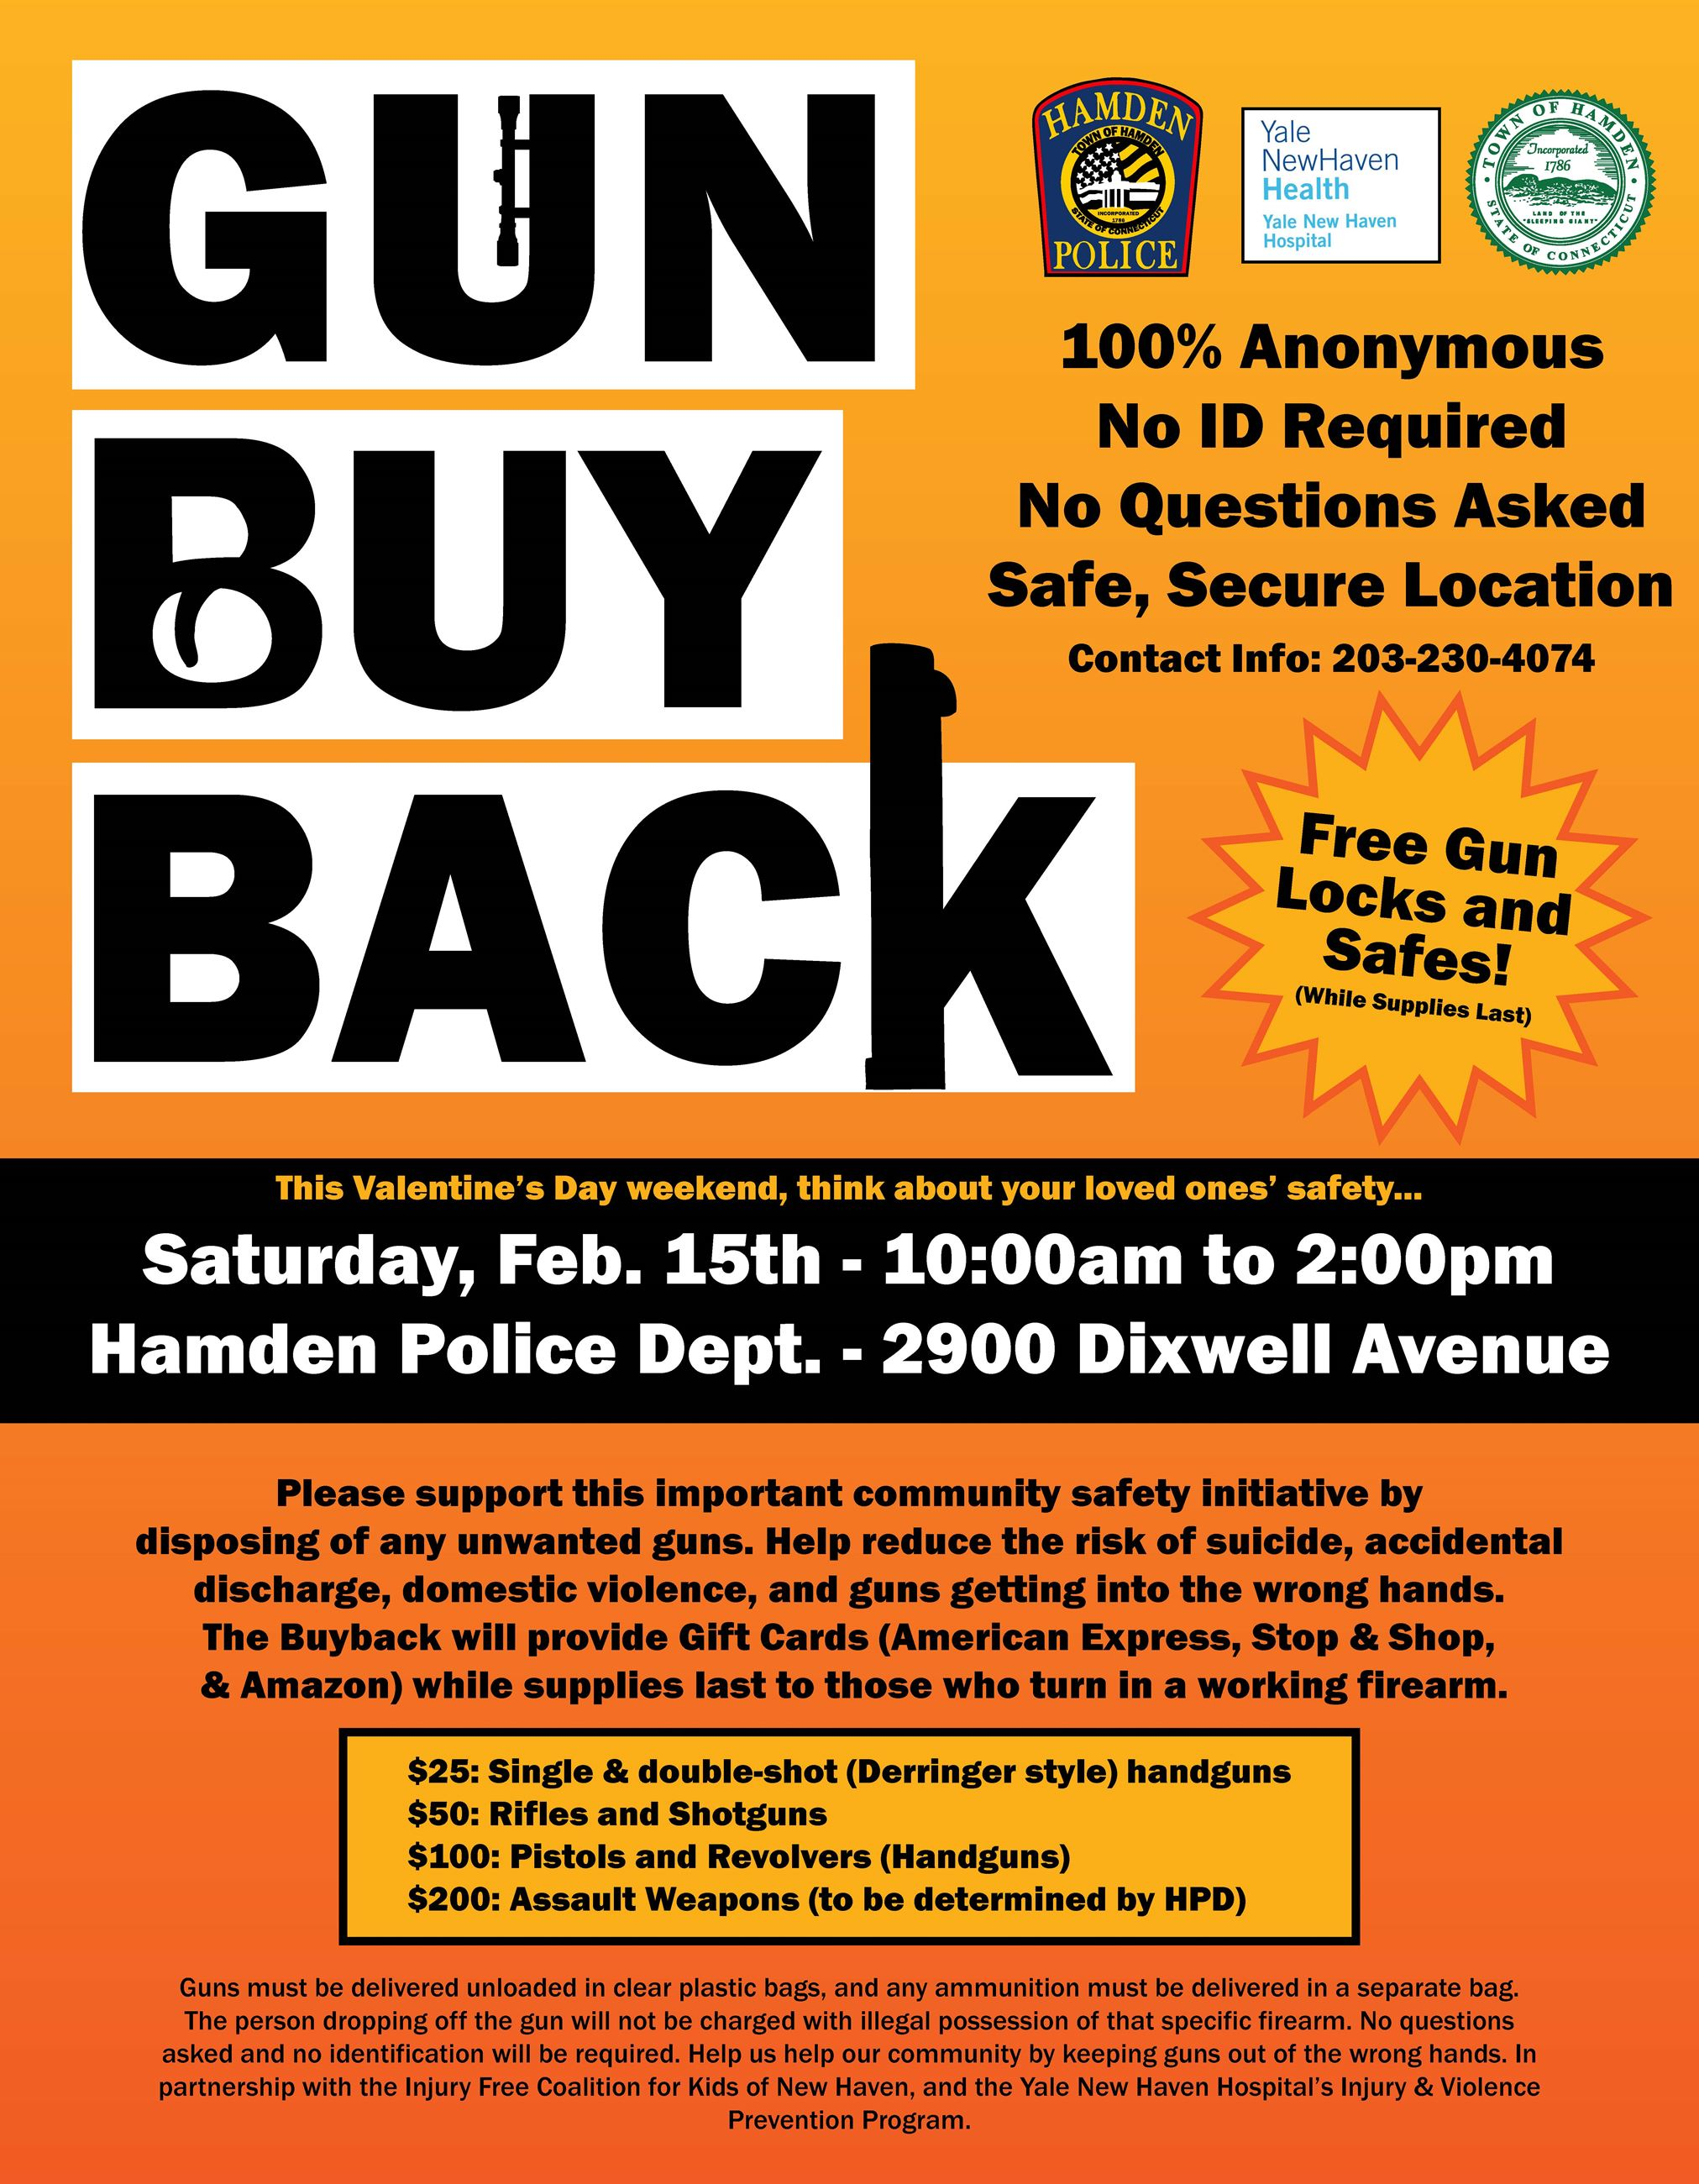 Gun Buy Back Flyer (PDF)